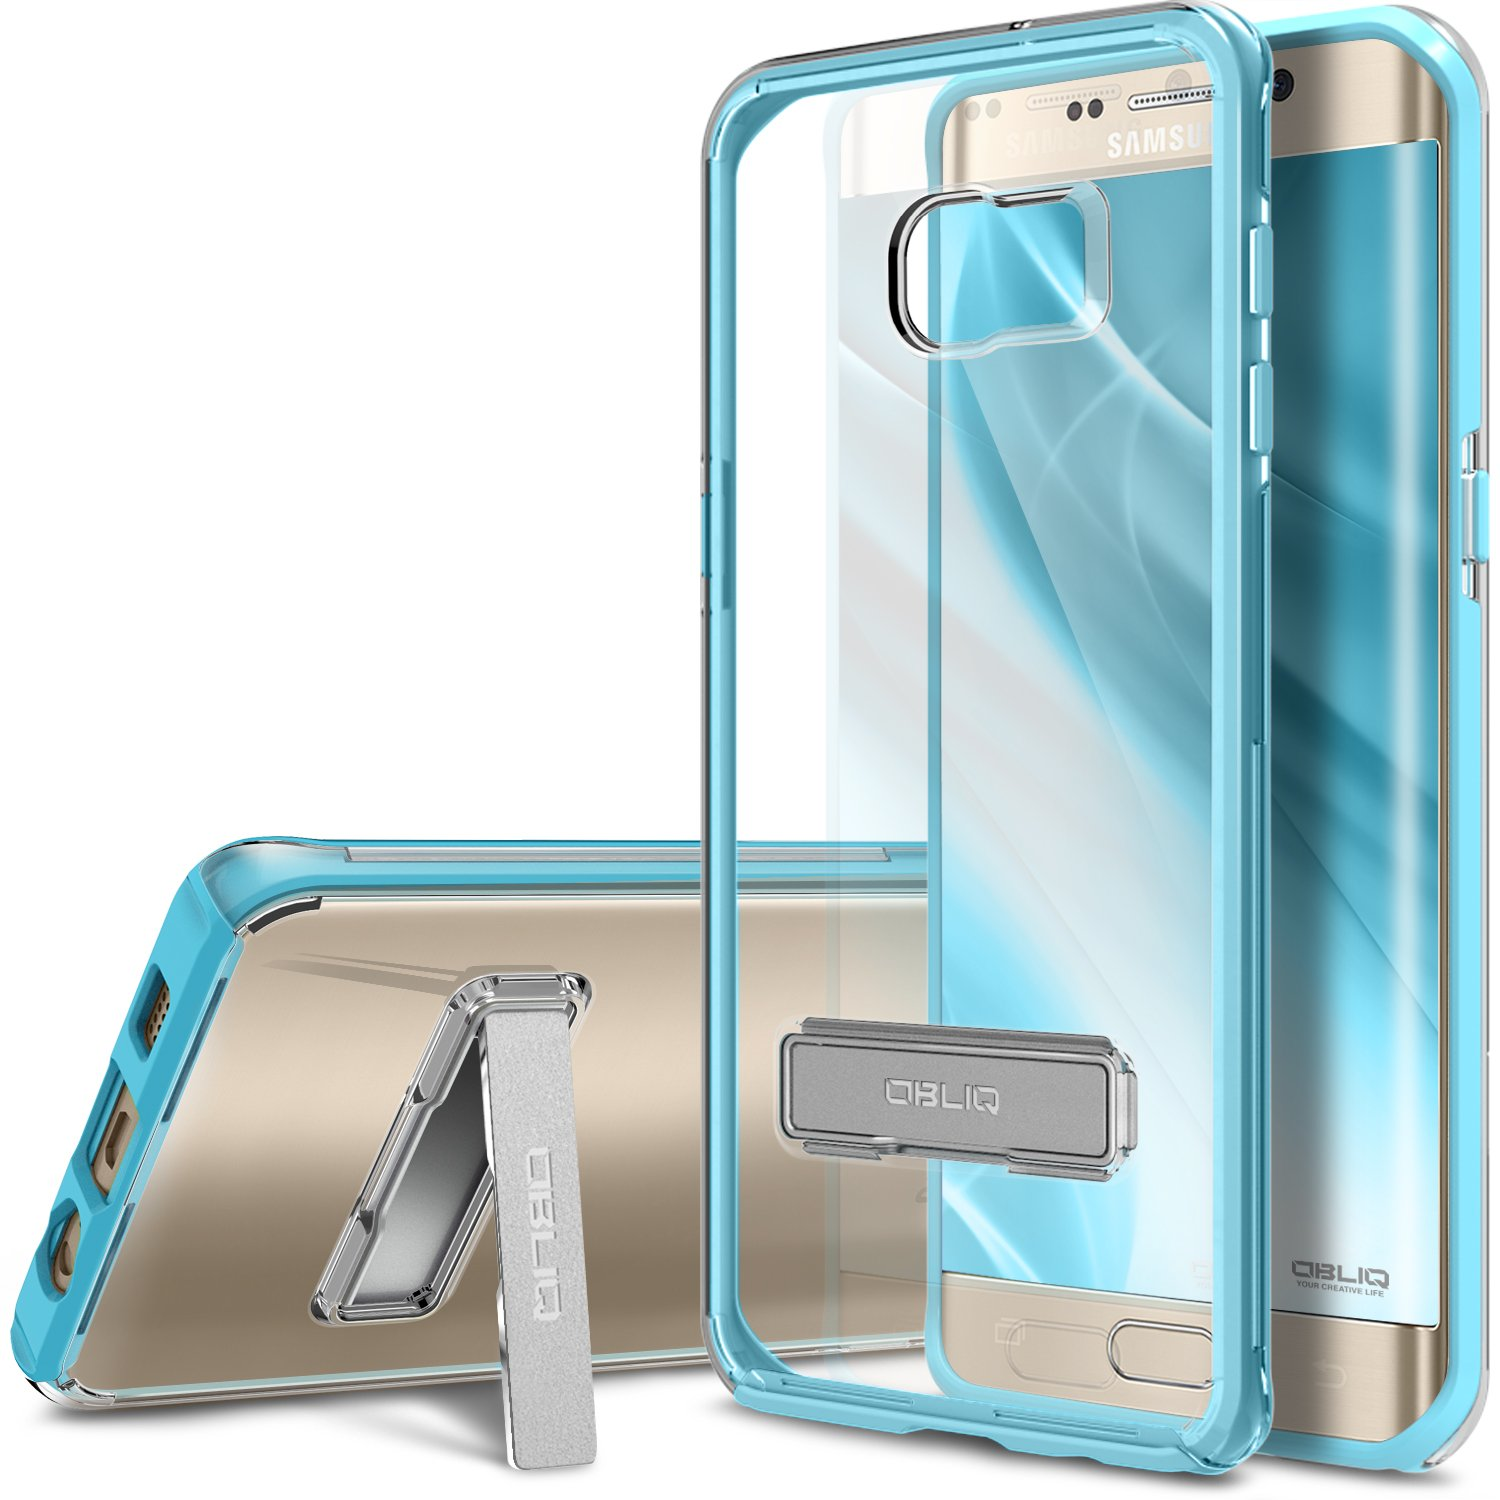 Galaxy S6 Edge Plus Case, OBLIQ [Naked Shield][Clear] - with Kickstand Thin Slim Fit TPU Bumper Hard Hybrid Shock Resist Protective Crystal Clear Case for Galaxy S6 Edge+ Mobile Life Group OBGS6EPNKSHD04